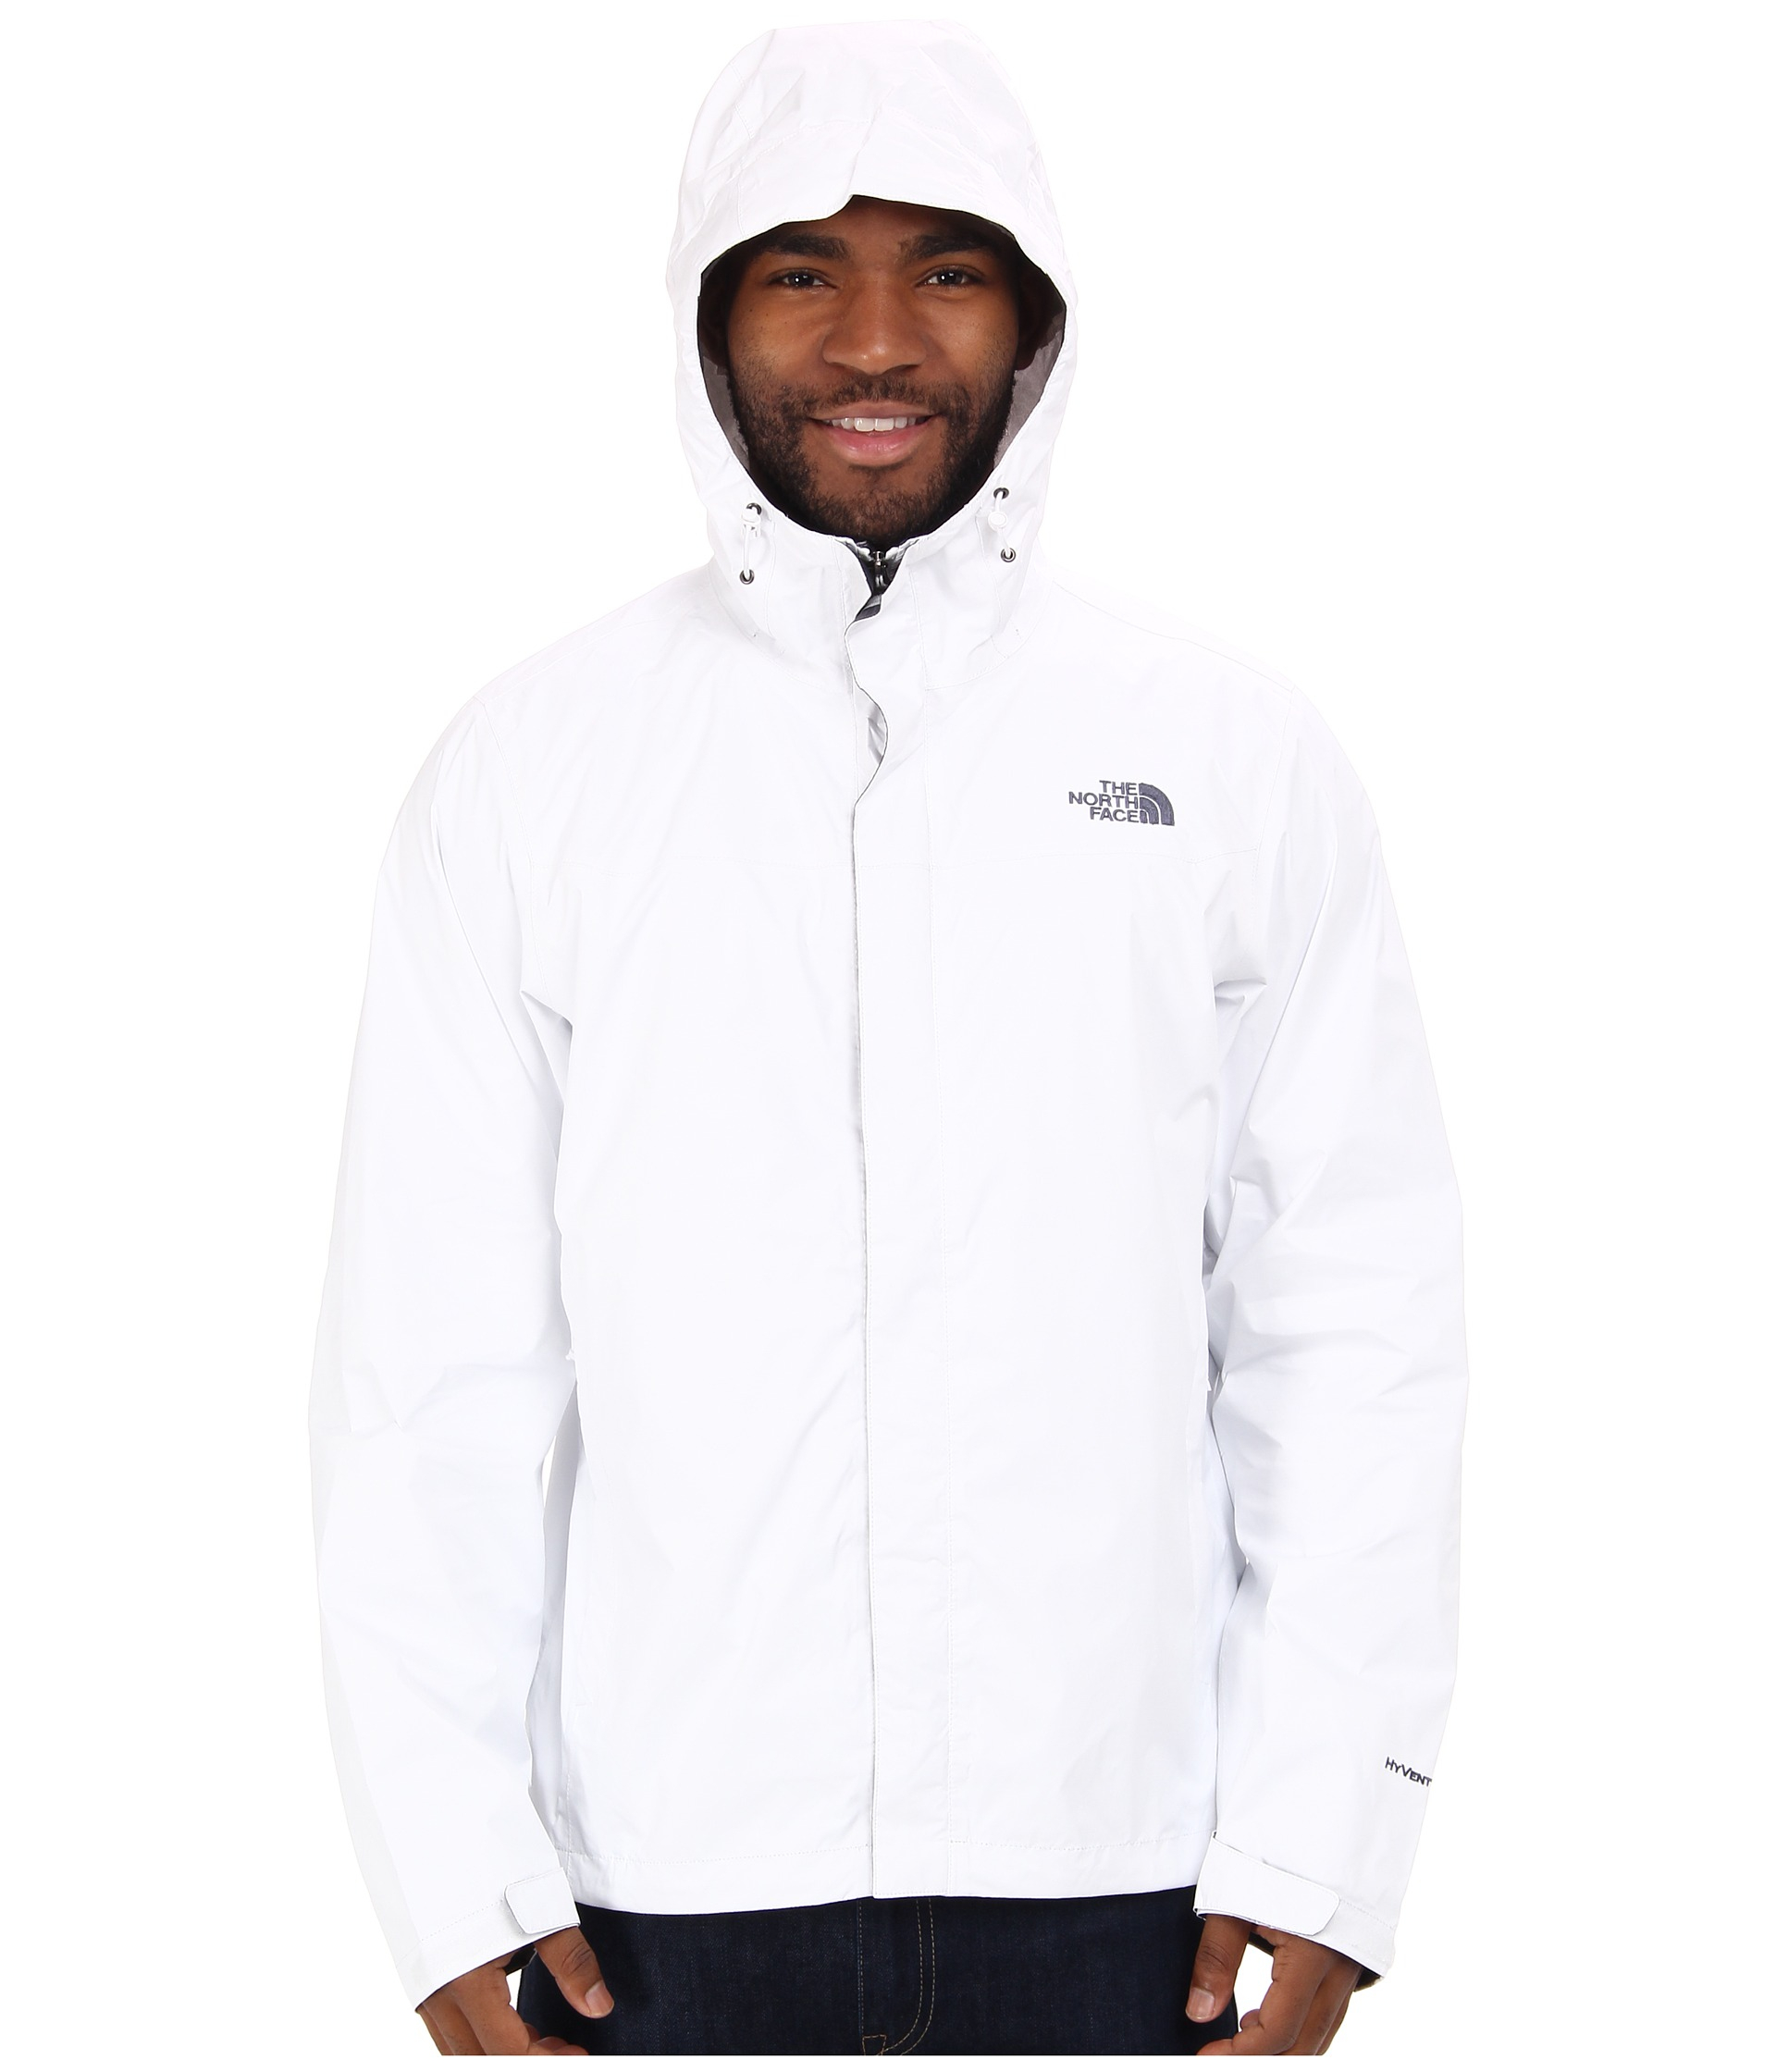 b251eb0c6063 ... Lyst - The North Face Venture Jacket in White for Men ...